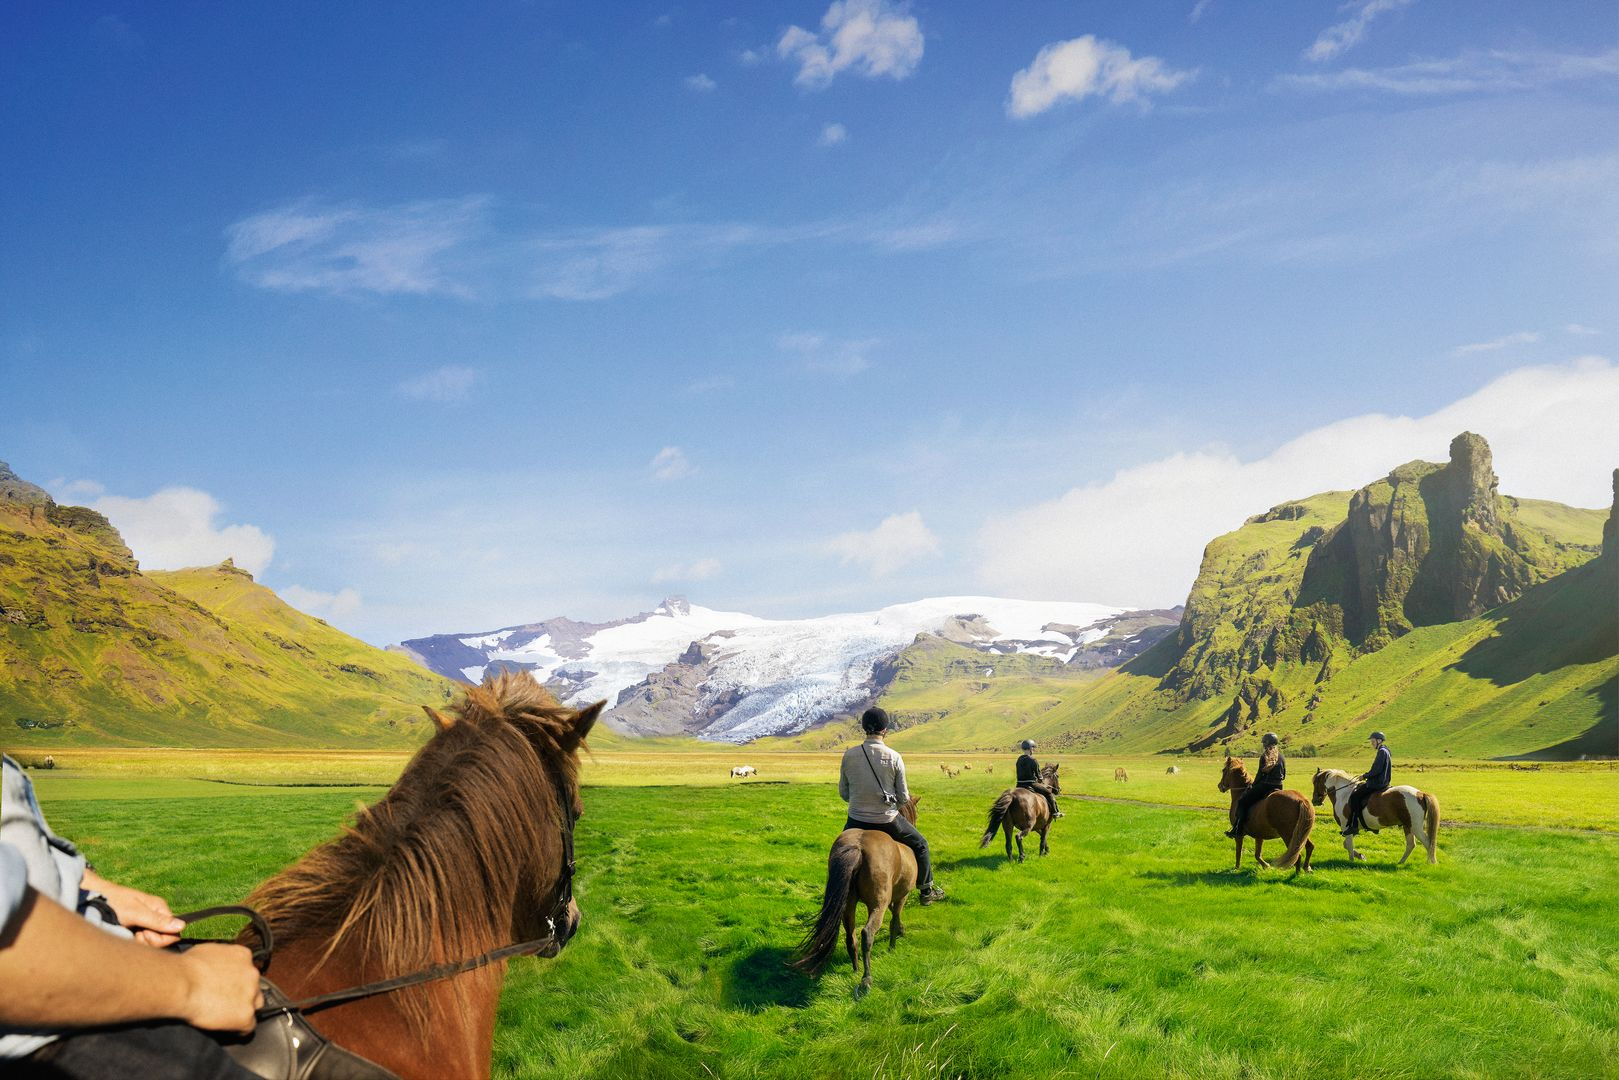 a group of horses riding through the Icelandic countryside